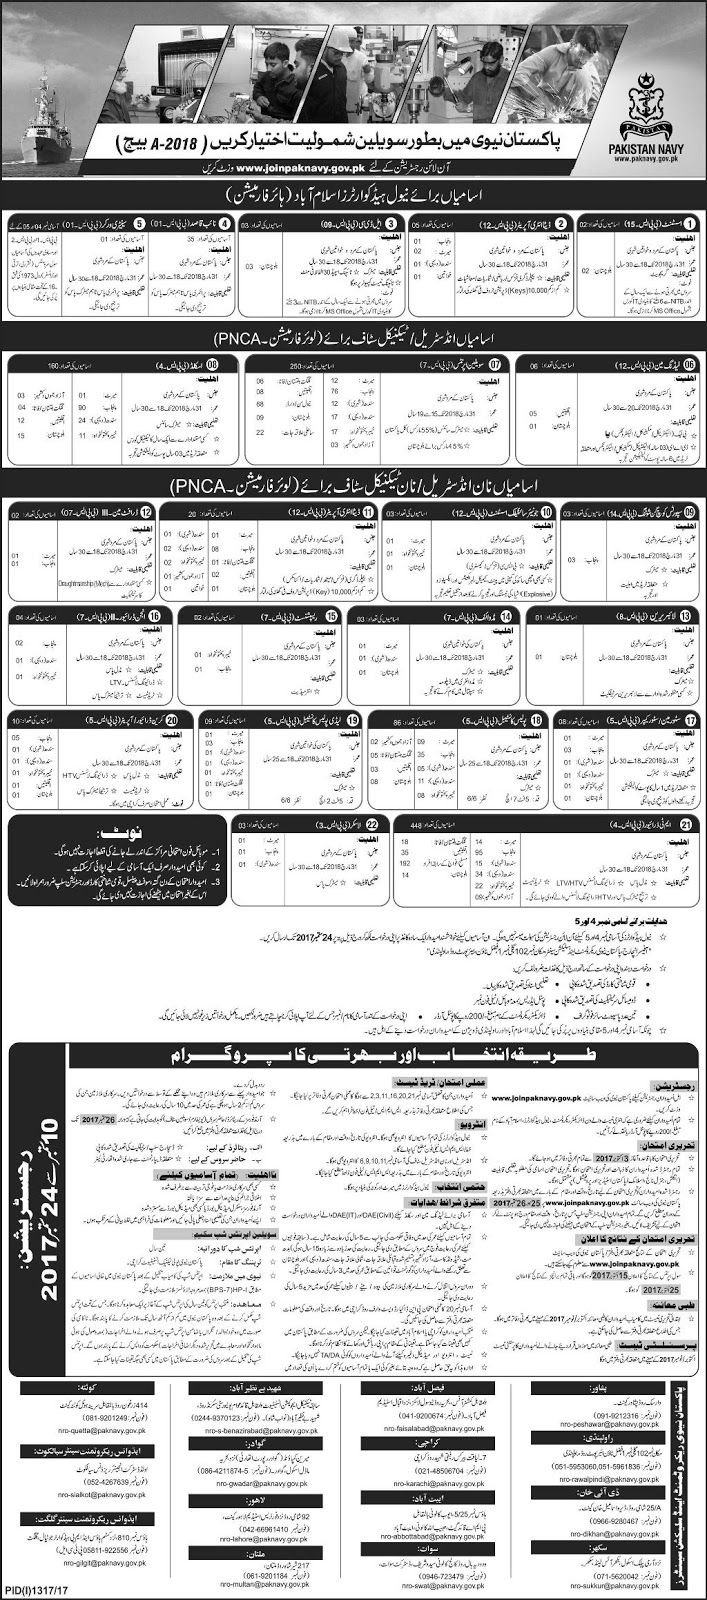 Join Pakistan Navy as Civilian A 2018 Batch (1064Vacancies) Online Registration http://ift.tt/2wSE93G   Recruitment Directorate established in 1980. We deal with the sacred task to induct talented energetic and morally upright human resource for the service while ensuring transparency and merit in the selection/recruitment of Officers Sailors and Civilians. To induct the best available human resource for Pakistan Navy remaining cognizant of the underrepresented and underprivileged sections…